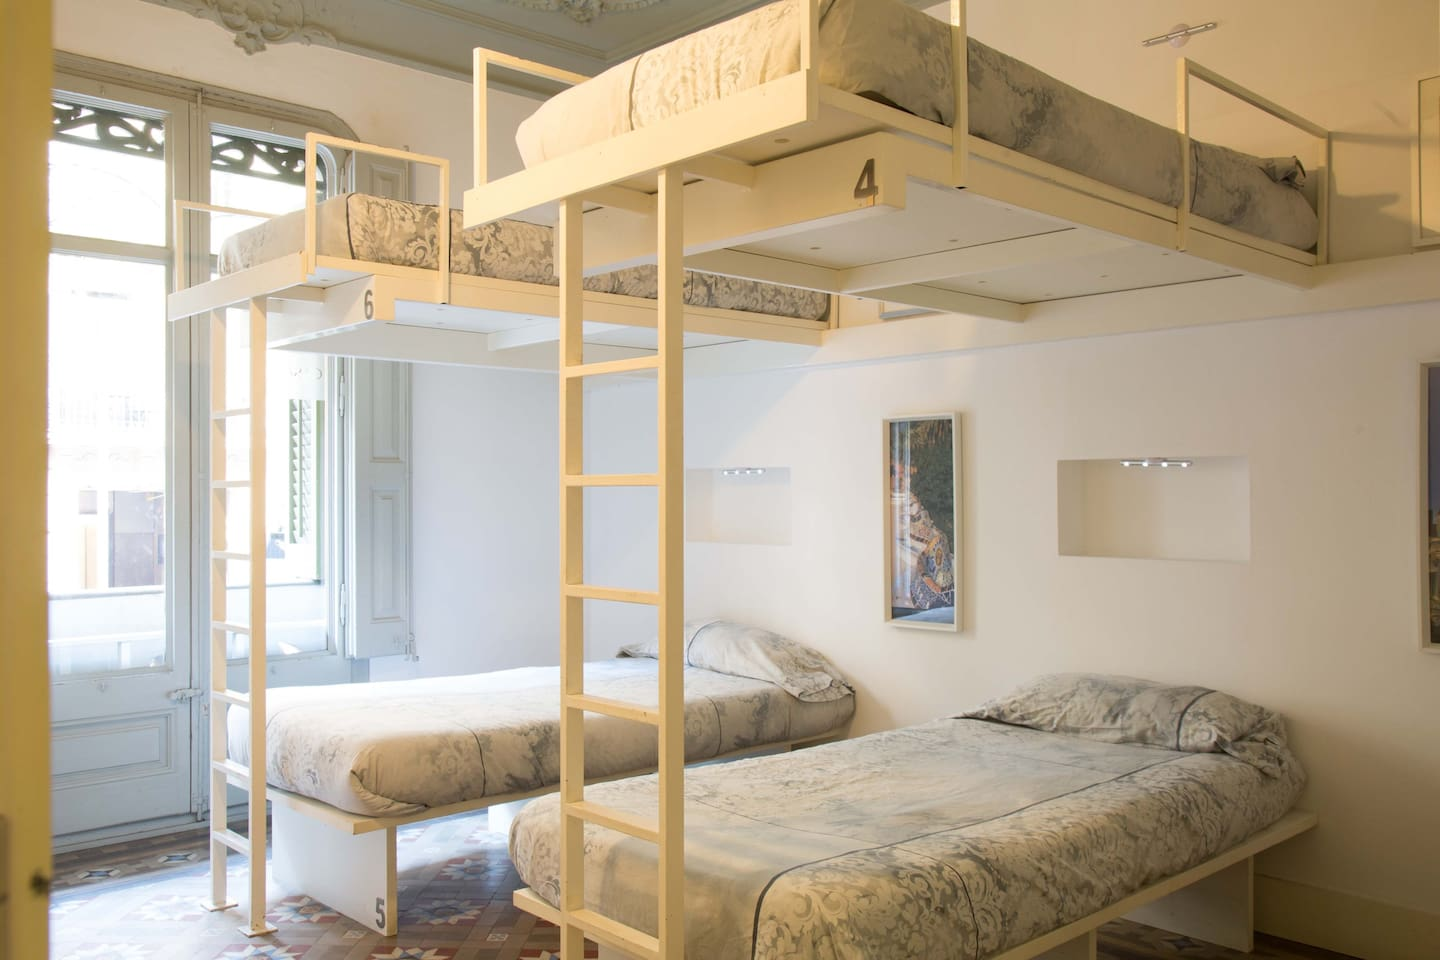 6-bed Female Dormitory room